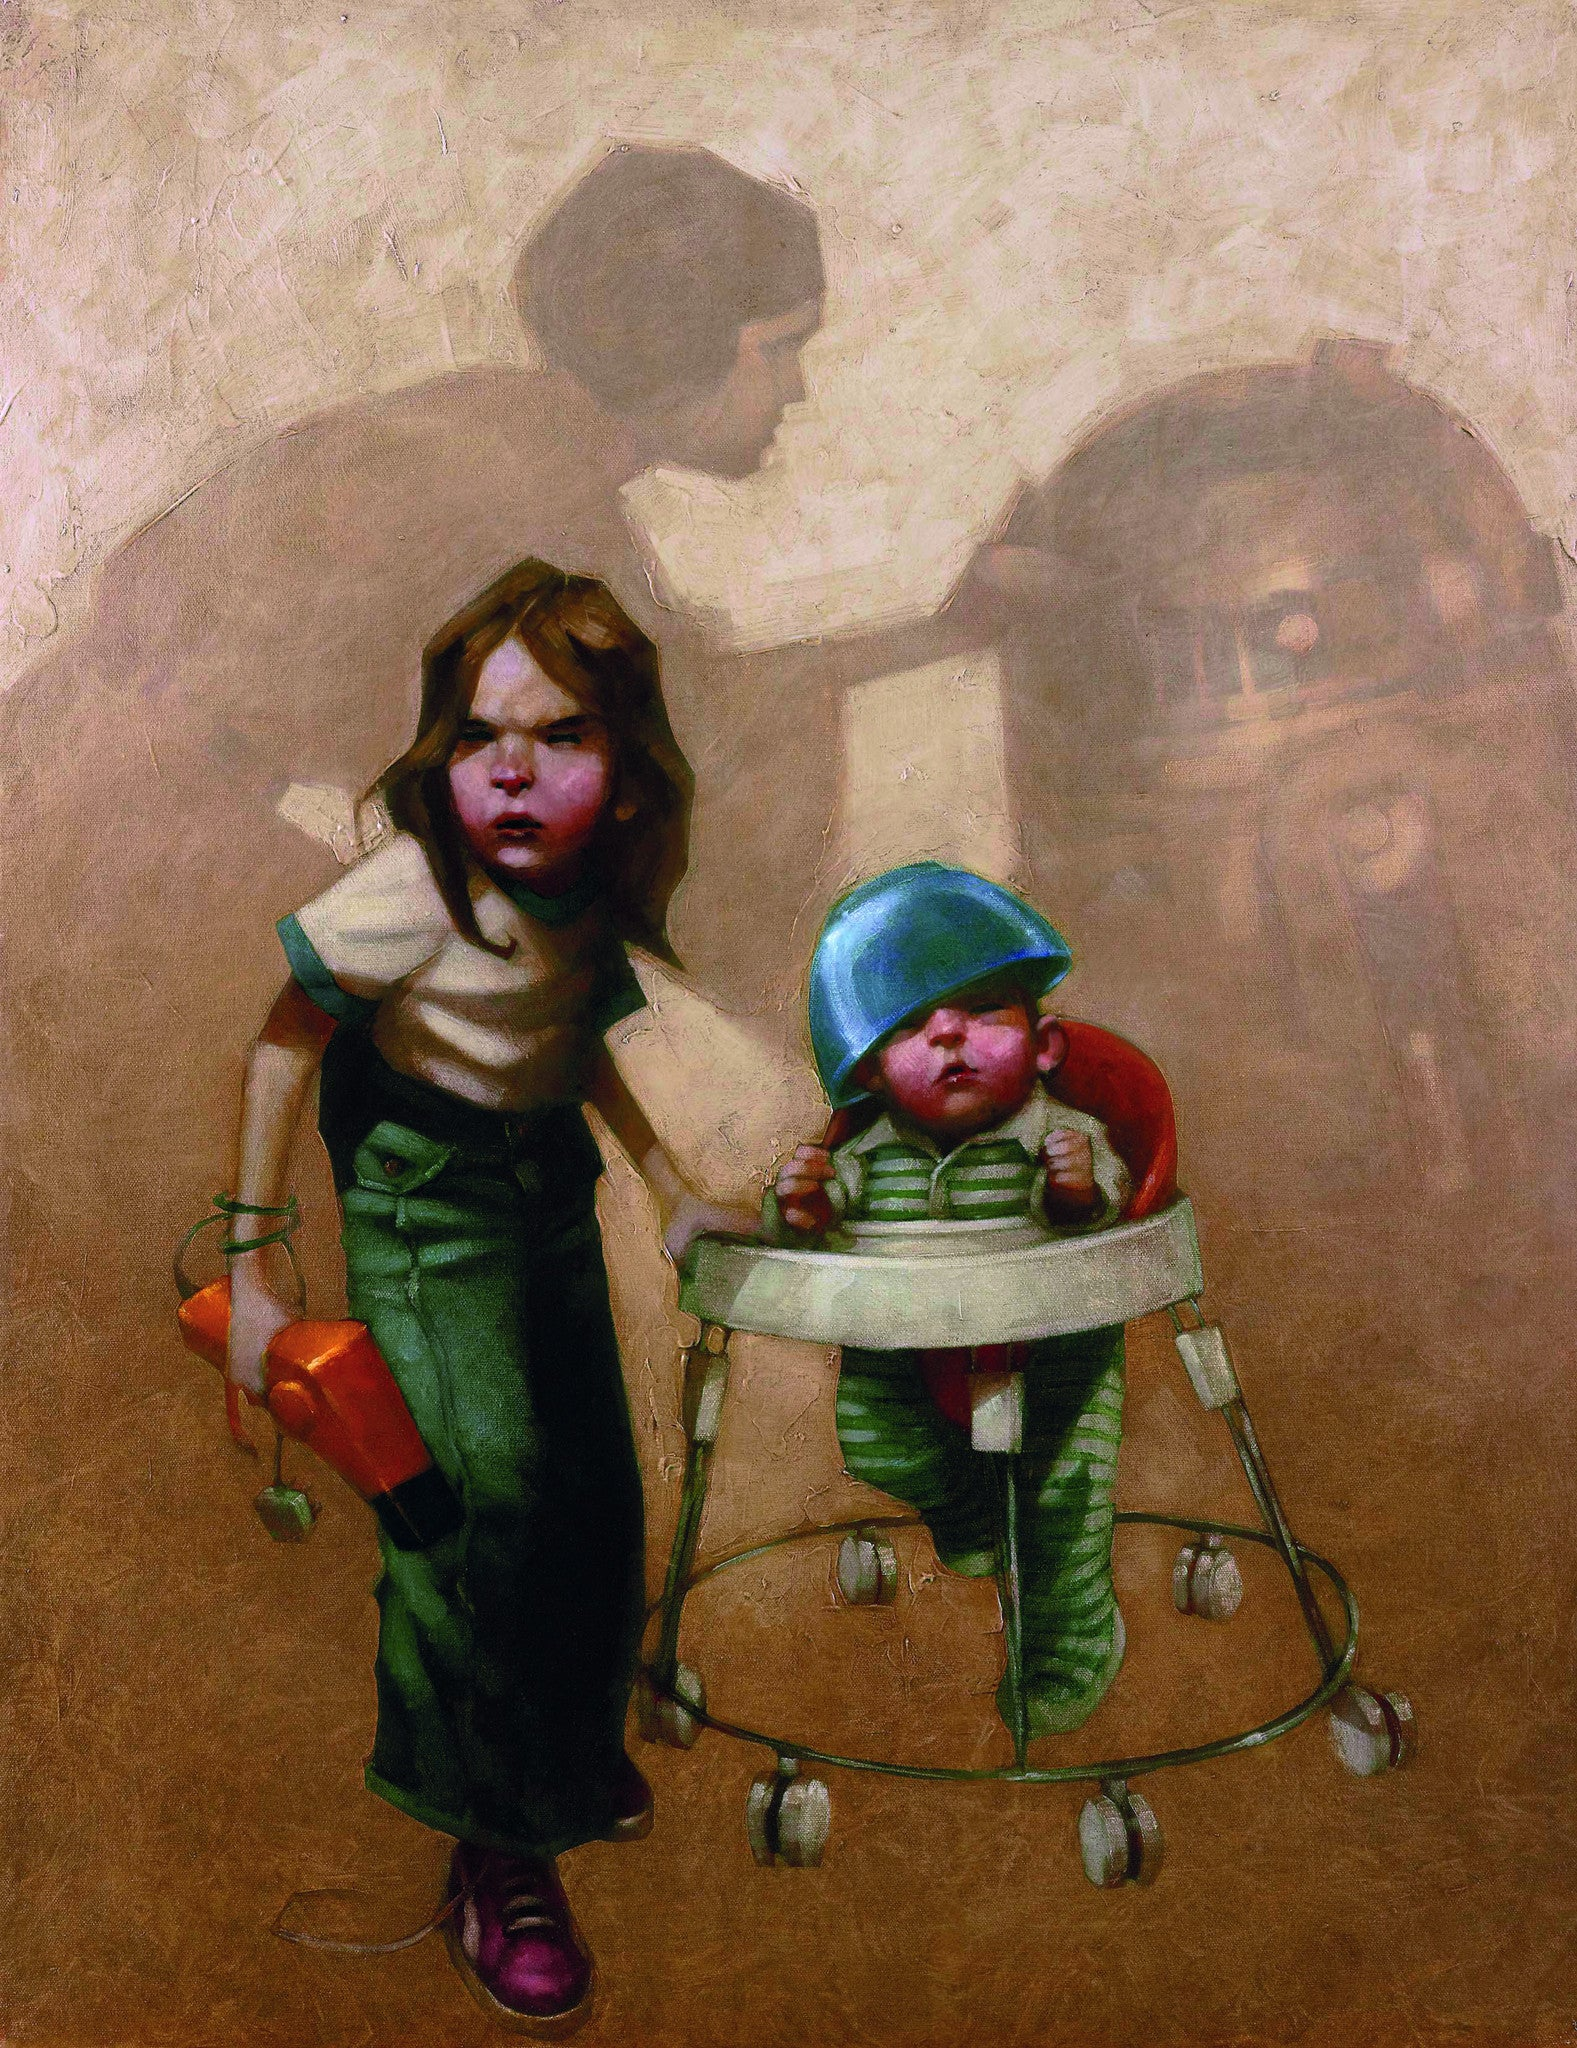 I Need Your Help R2... - 2014 - Craig Davison - Antidote Art